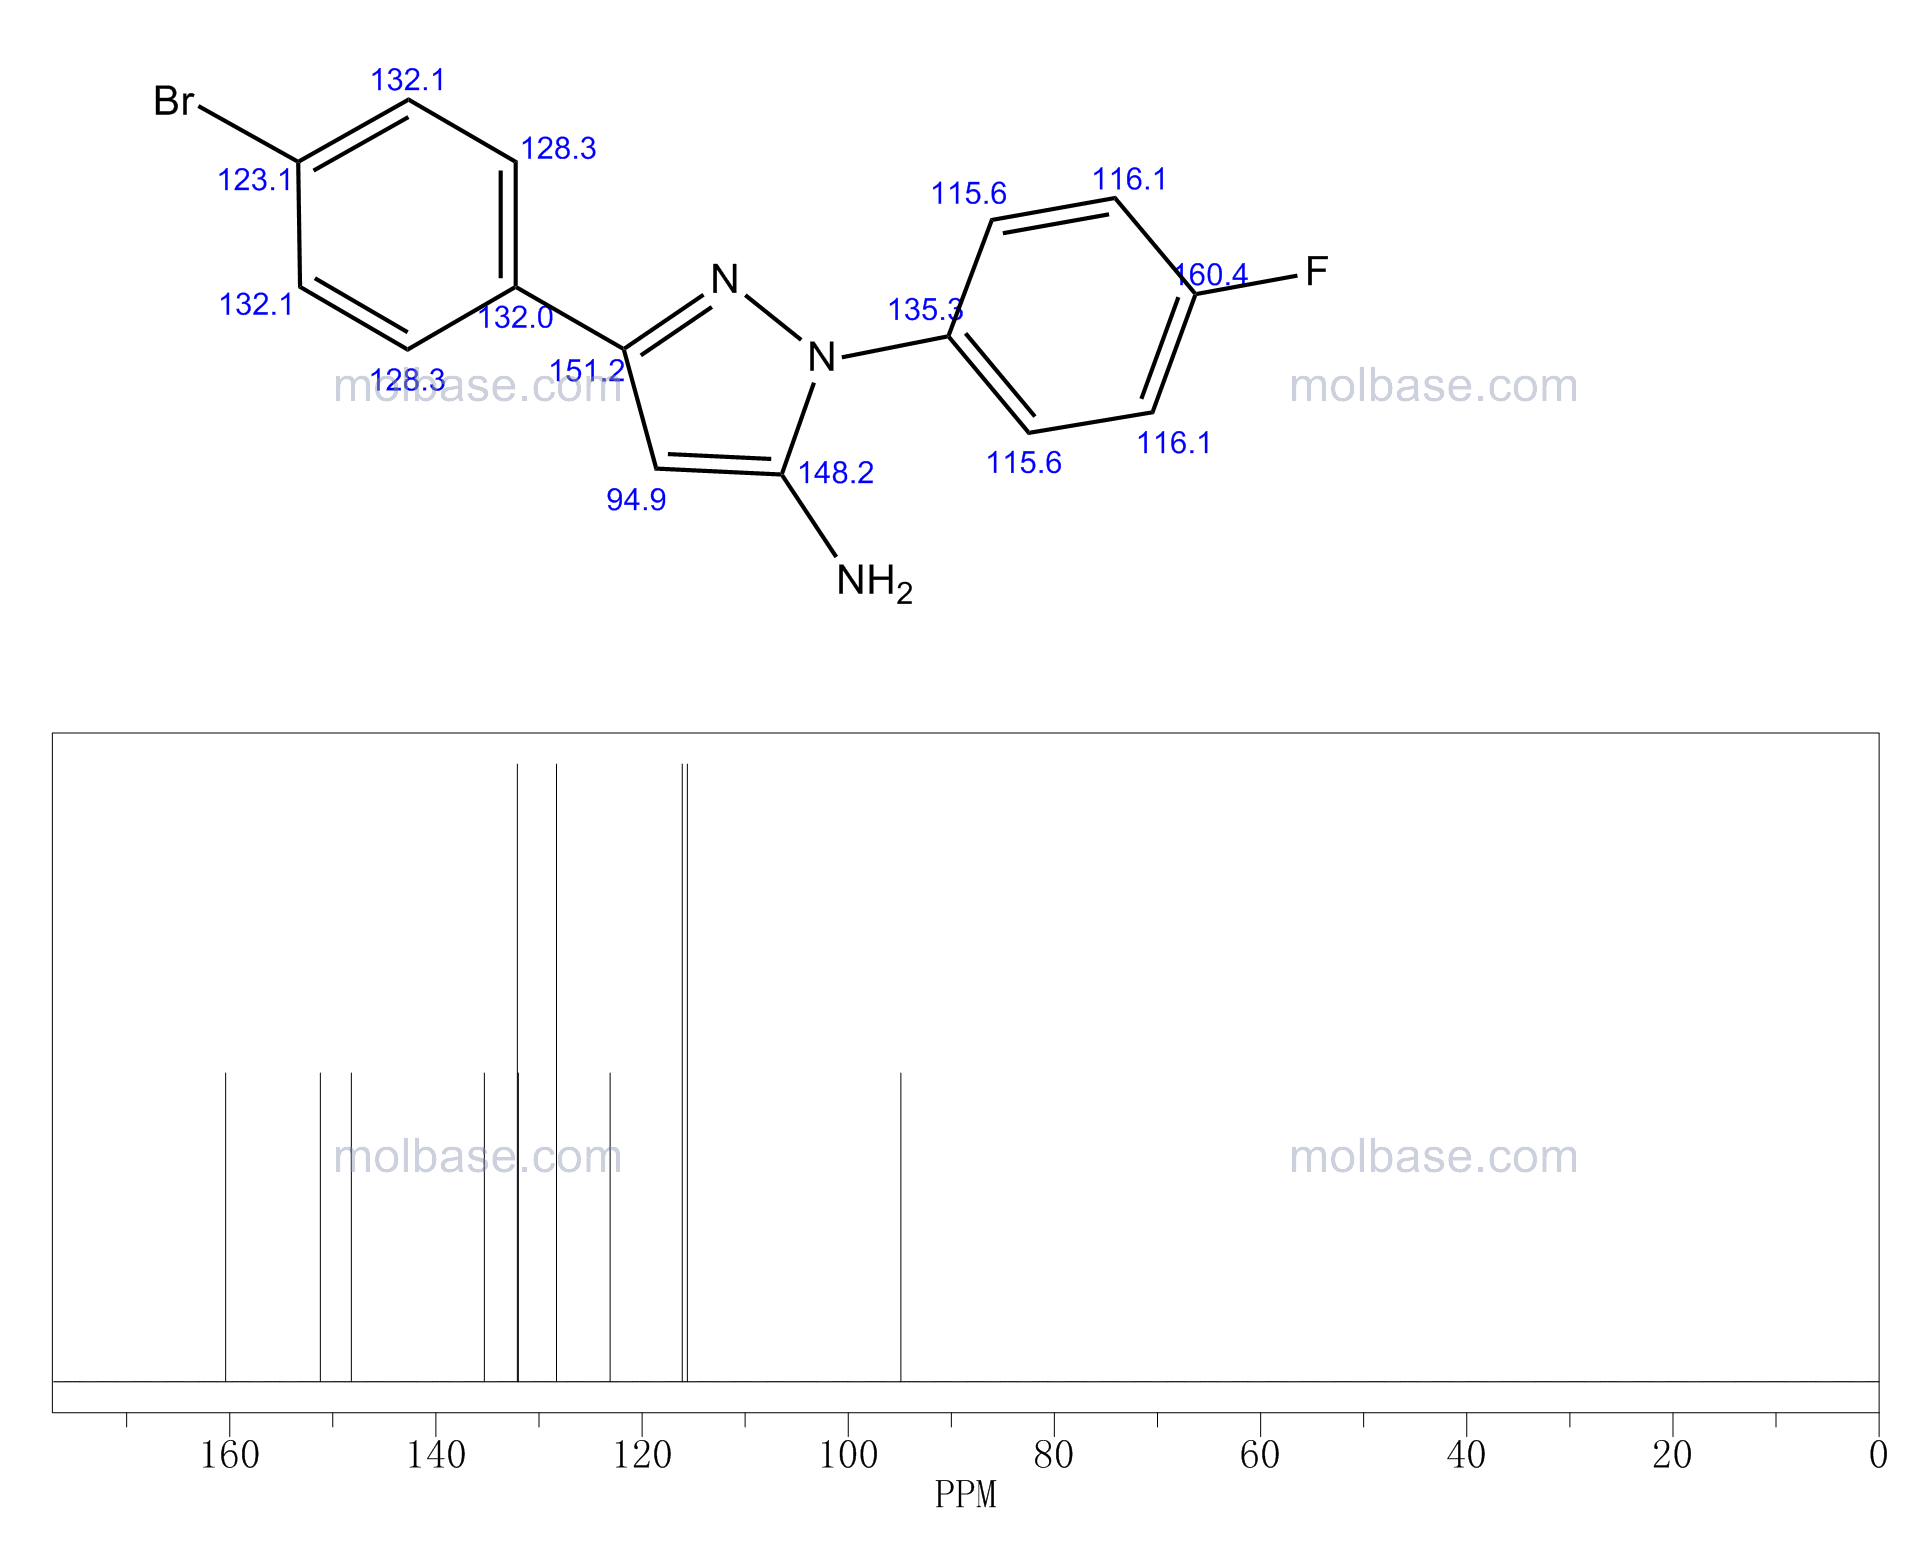 3-(4-BROMOPHENYL)-1-(4-FLUOROPHENYL)-1H-PYRAZOL-5-AMINE NMR spectra analysis, Chemical CAS NO. 618098-14-9 NMR spectral analysis, 3-(4-BROMOPHENYL)-1-(4-FLUOROPHENYL)-1H-PYRAZOL-5-AMINE C-NMR spectrum